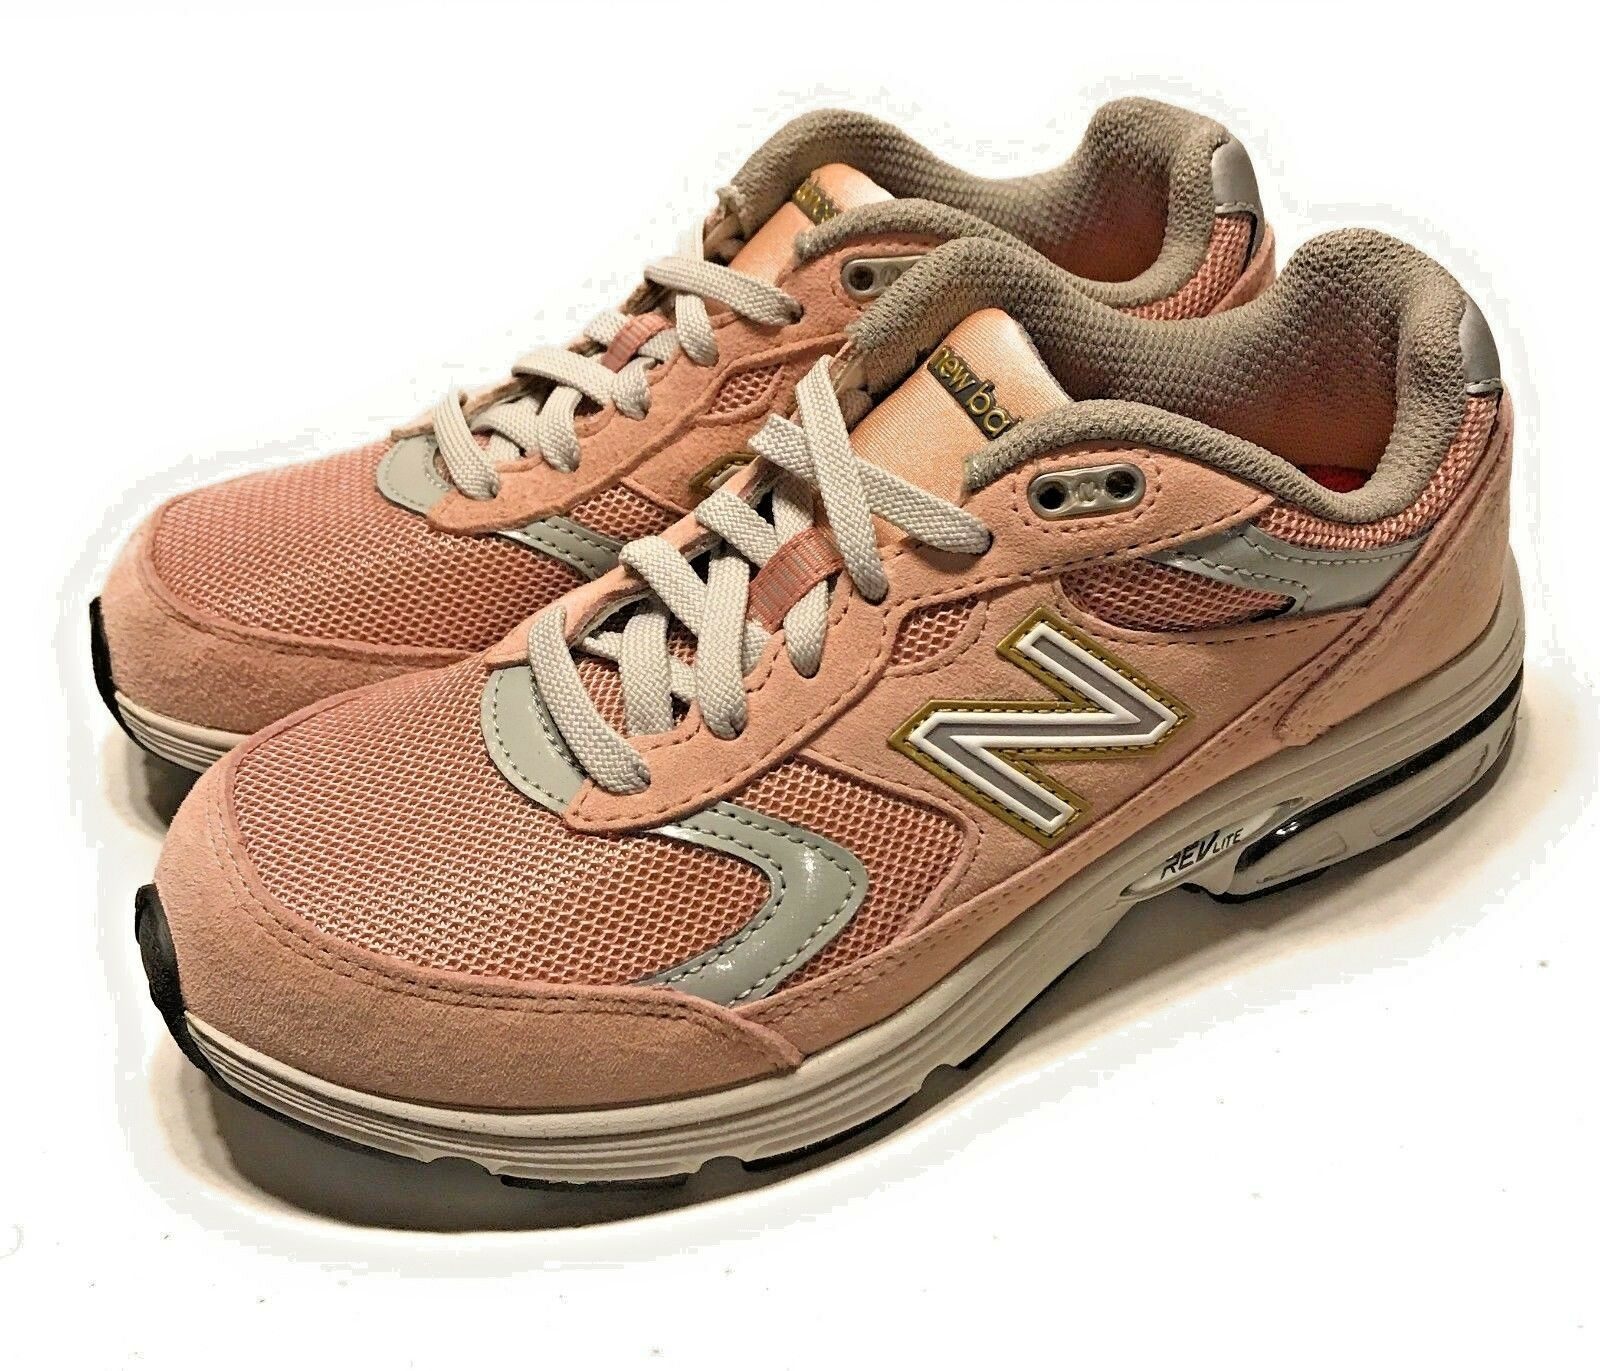 New Balance Womens 880 Running Shoes Dusty Pink Grey Gold WW880RP2 Size 6.5